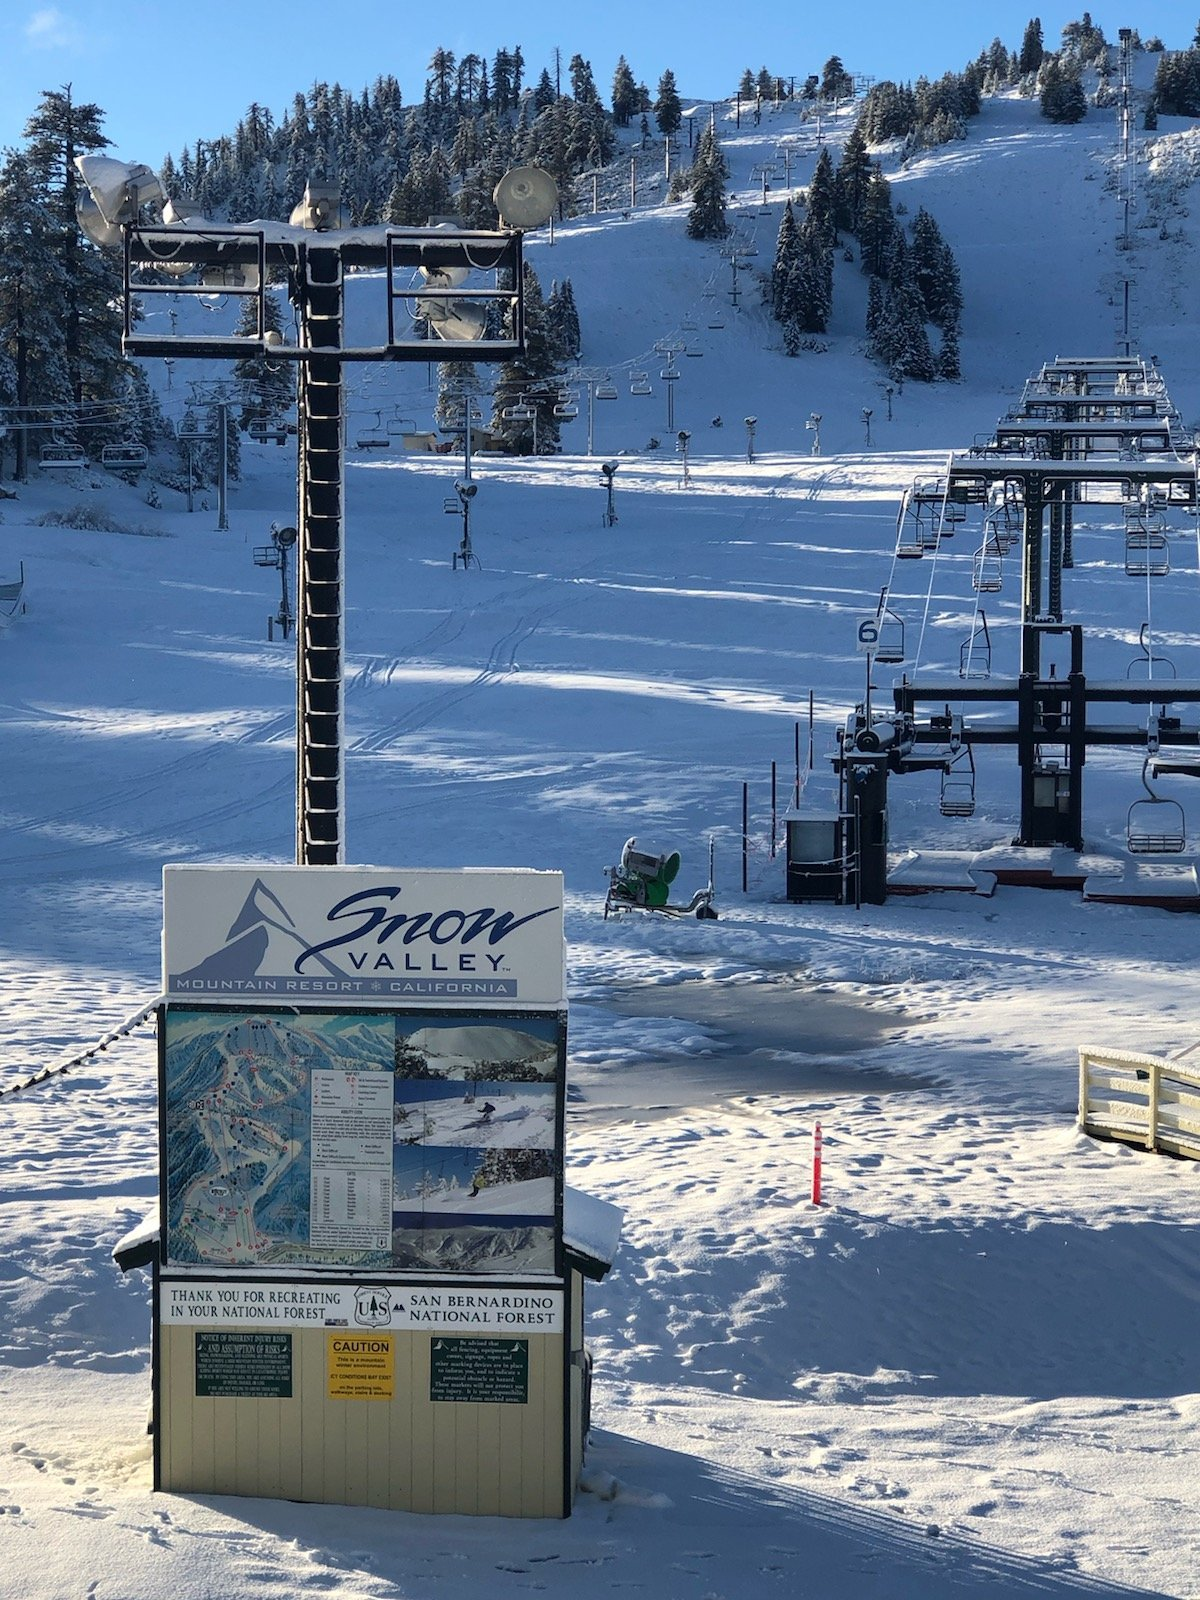 Large Snow Valley terrain map stands in front of ski lift on a clear day